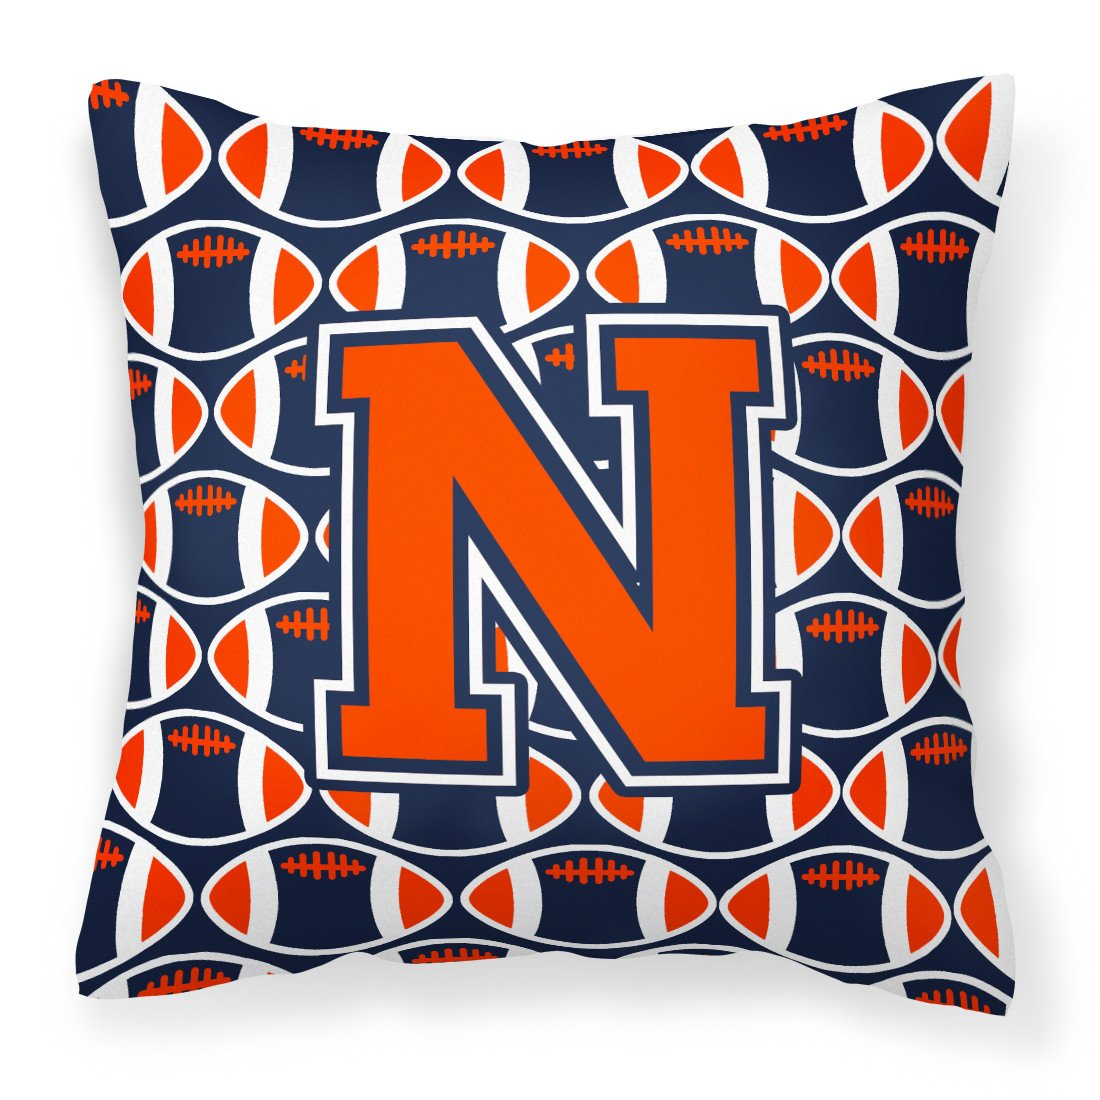 Letter N Football Orange, Blue and white Fabric Decorative Pillow CJ1066-NPW1414 by Caroline's Treasures